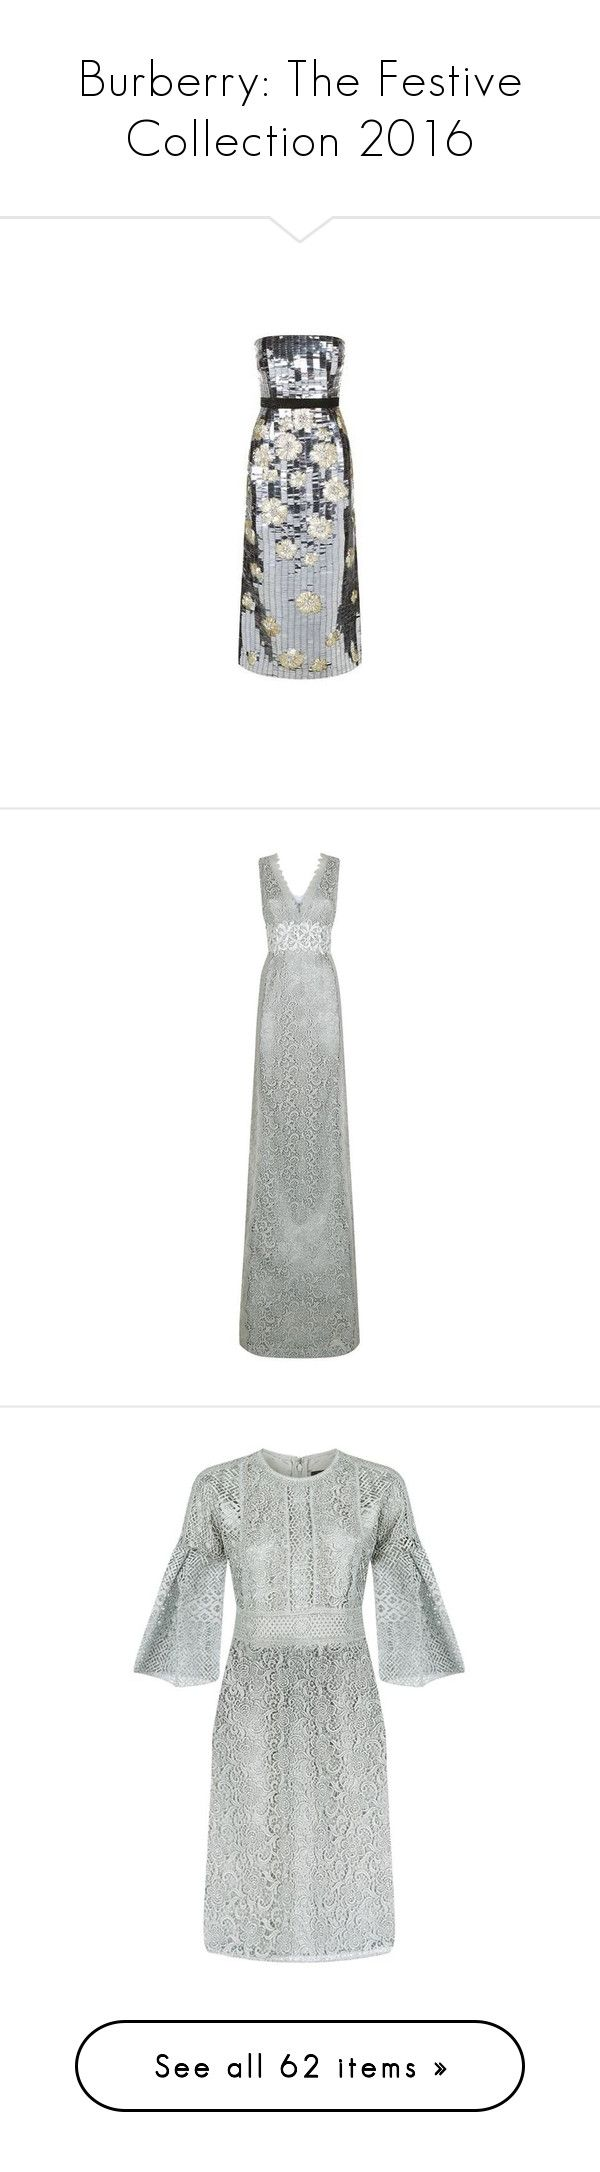 """""""Burberry: The Festive Collection 2016"""" by livnd ❤ liked on Polyvore featuring Burberry, livndfashion, livndburberry, dresses, burberry, vestido, silver sequin cocktail dress, silver cocktail dress, sequin dress and silver dress"""